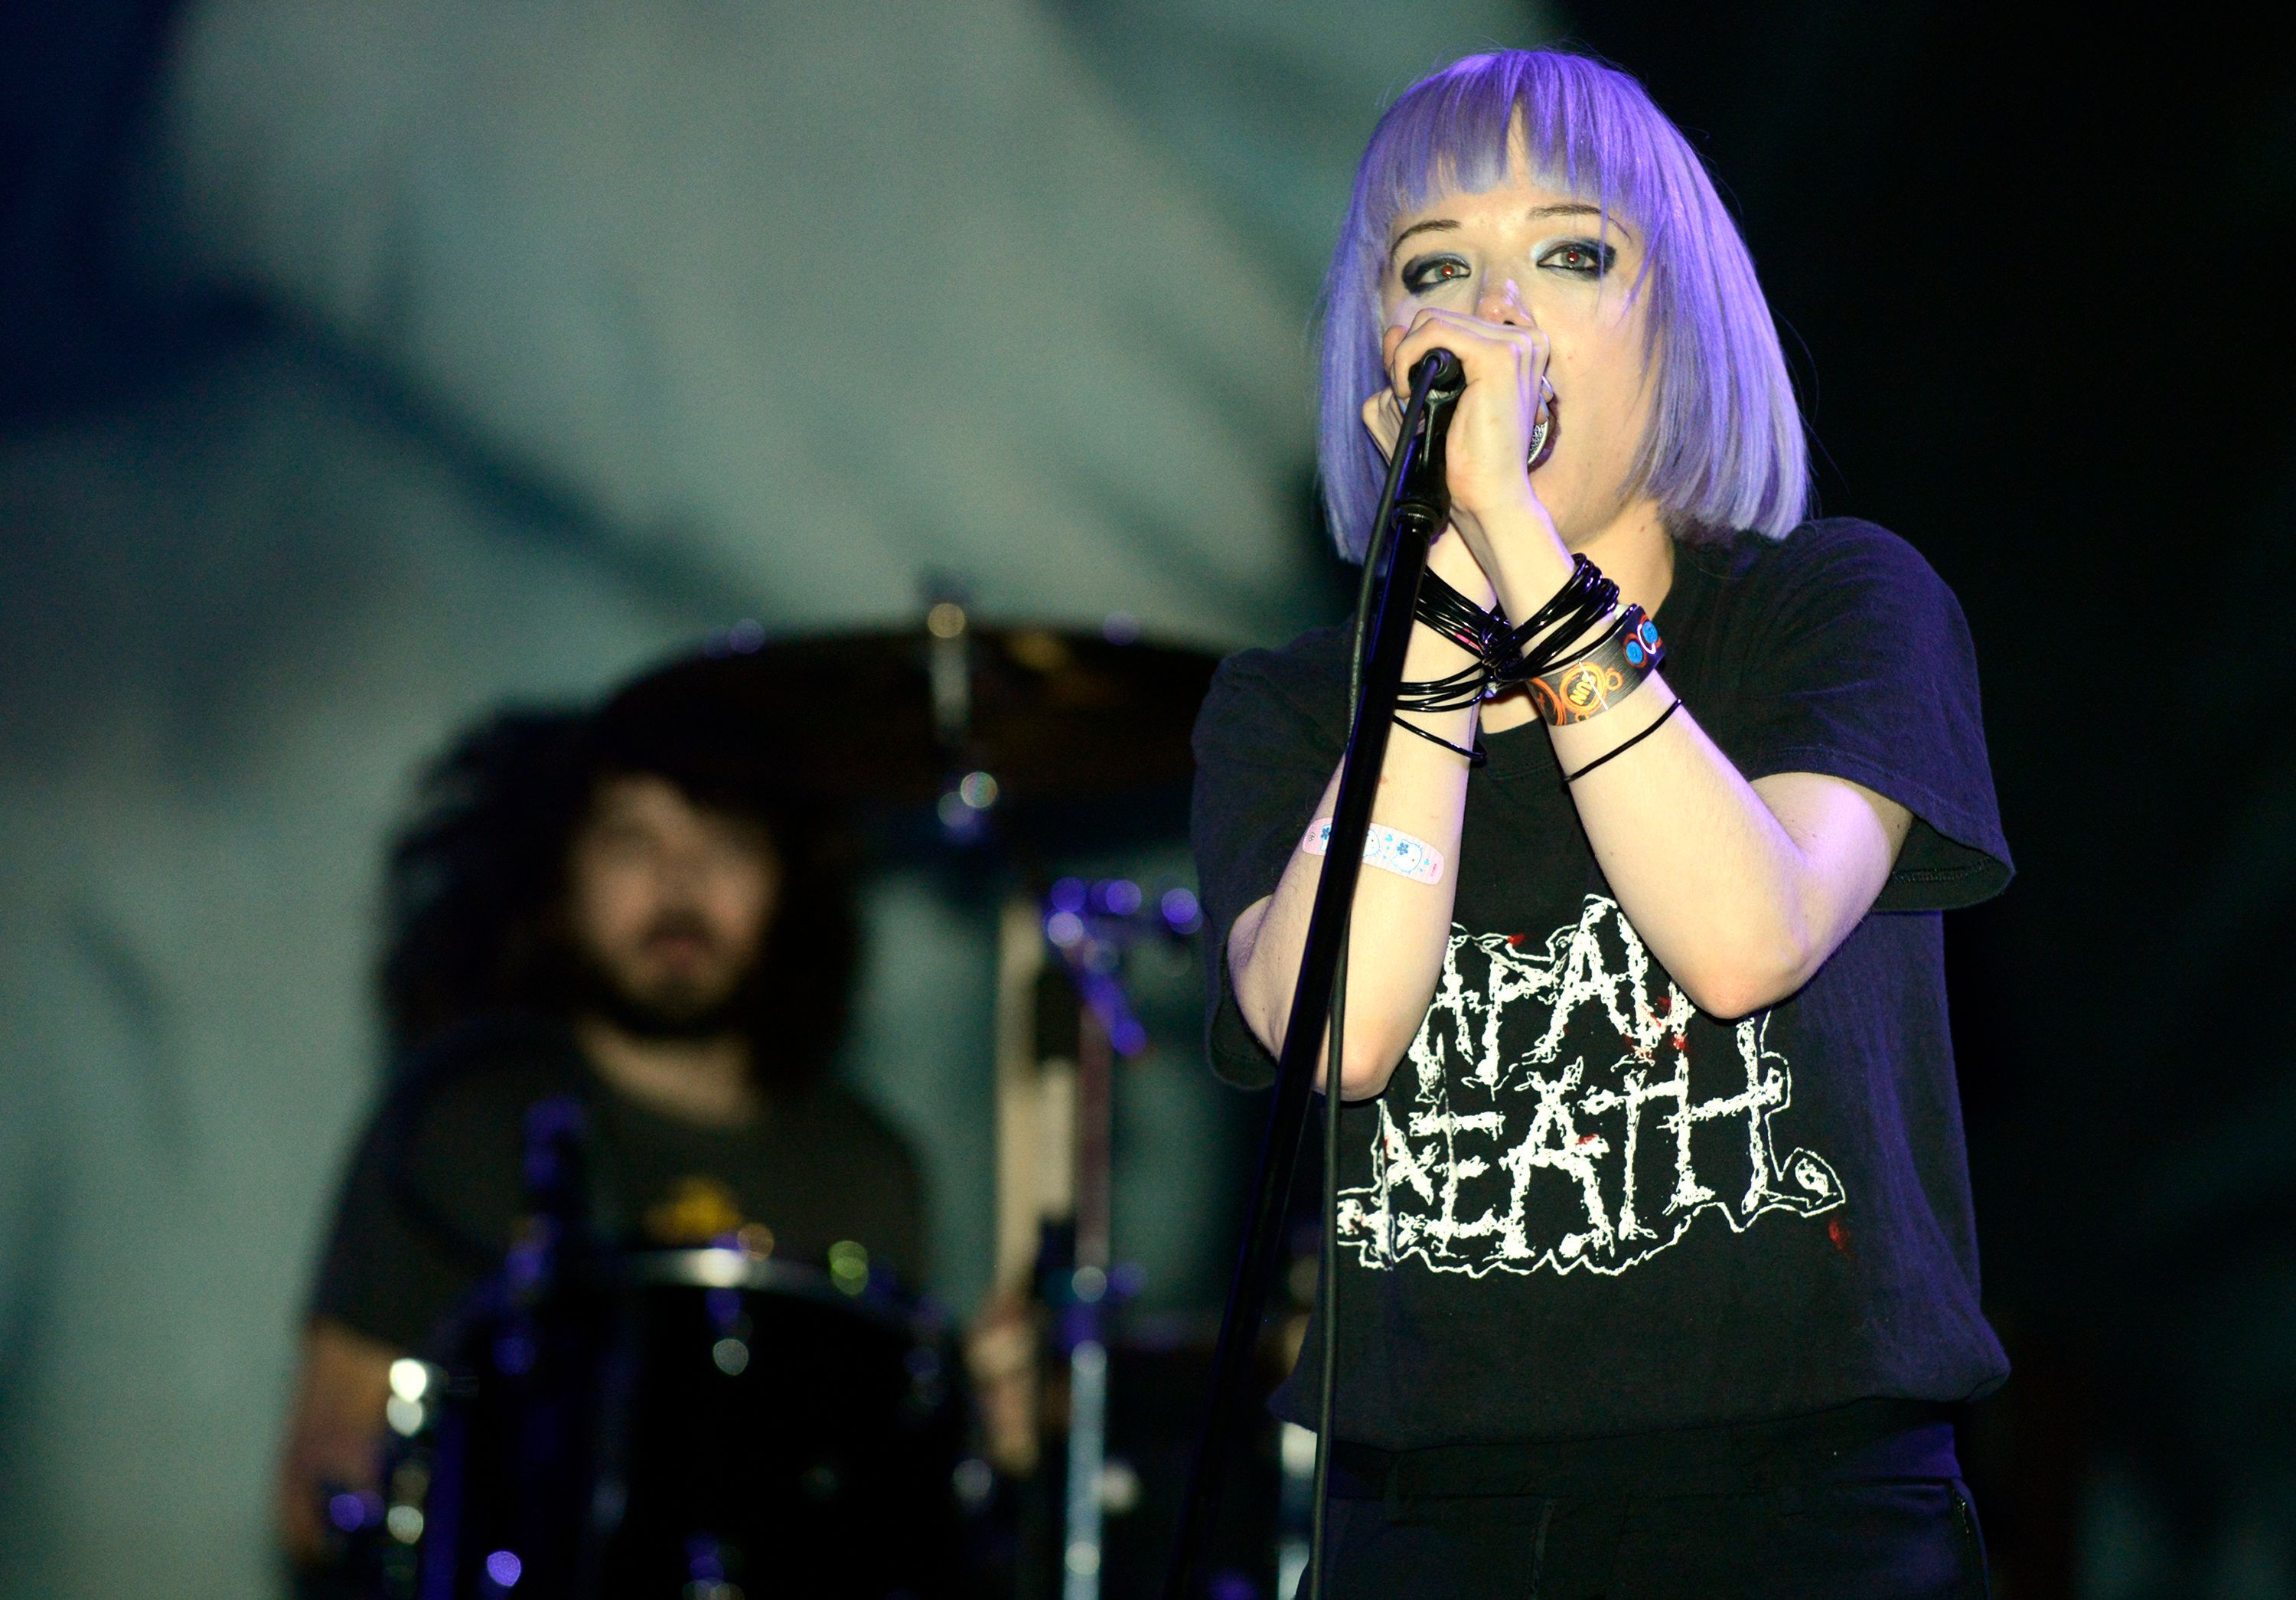 Alice Glass, co-founder of the band Crystal Castles, accused former band member Ethan Kath of mental, physical and